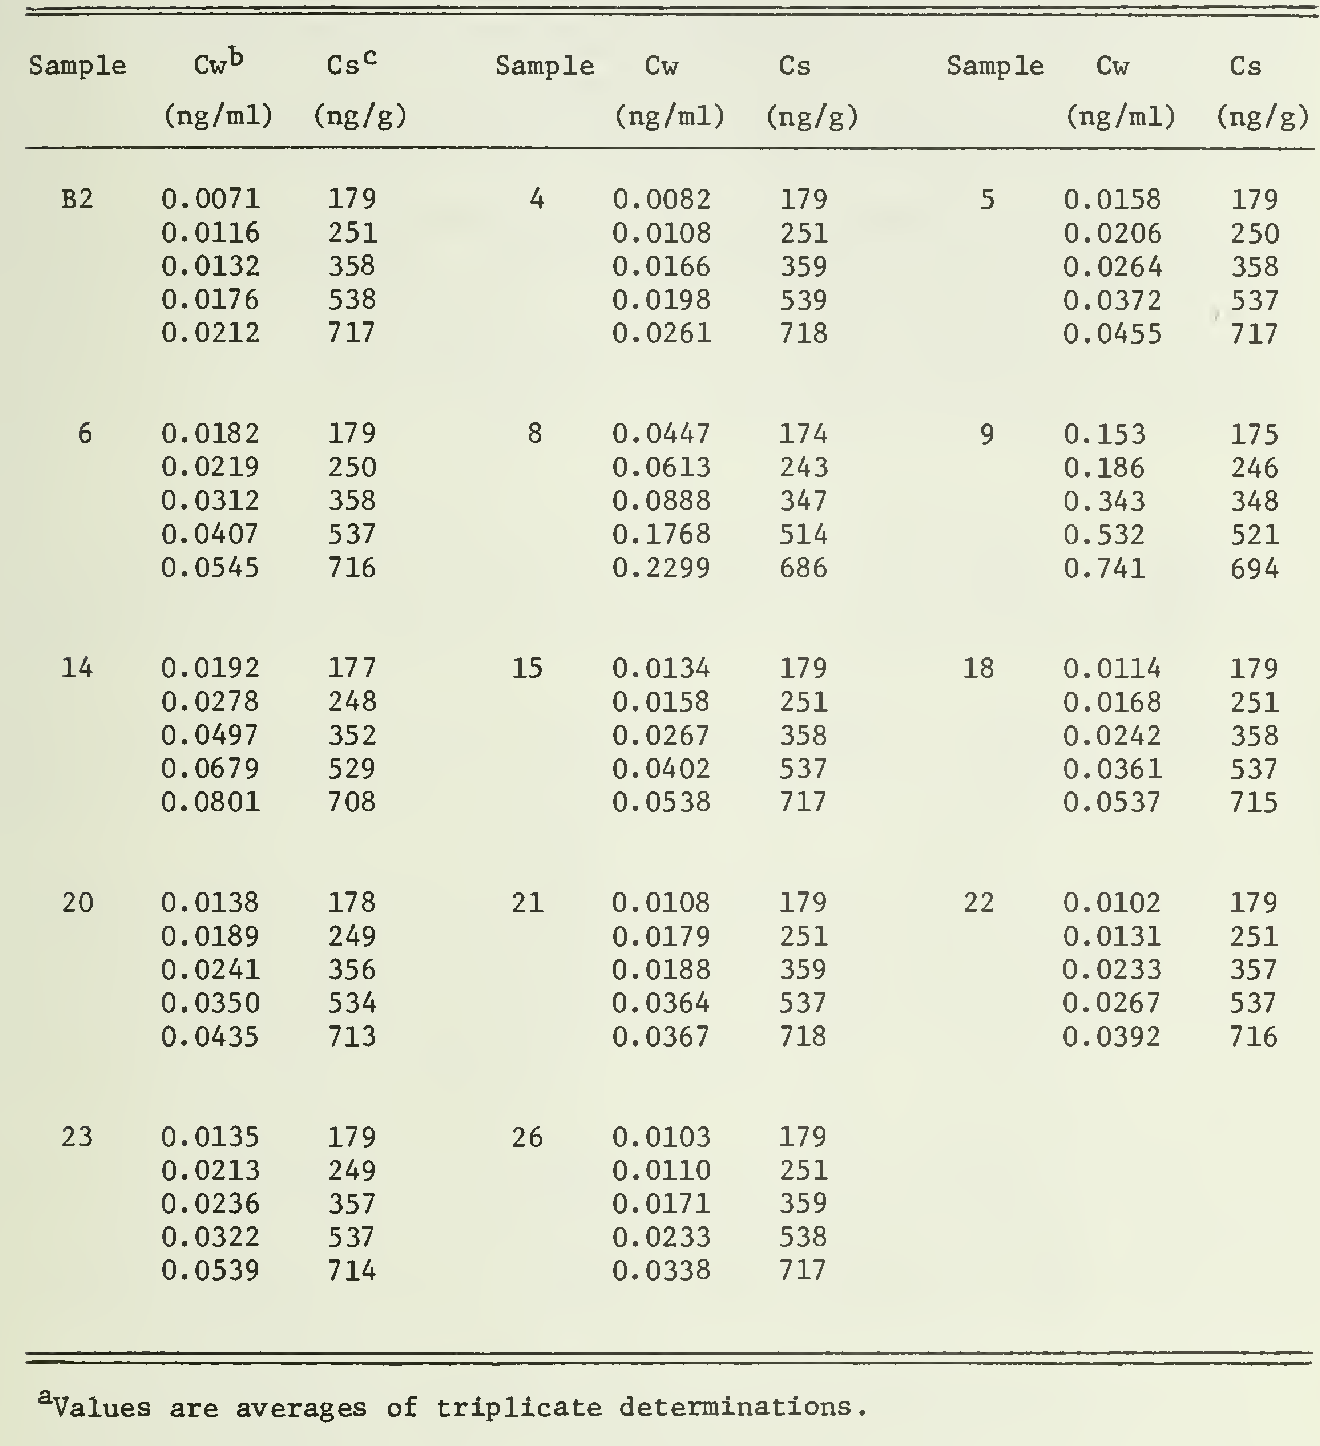 table 4.34